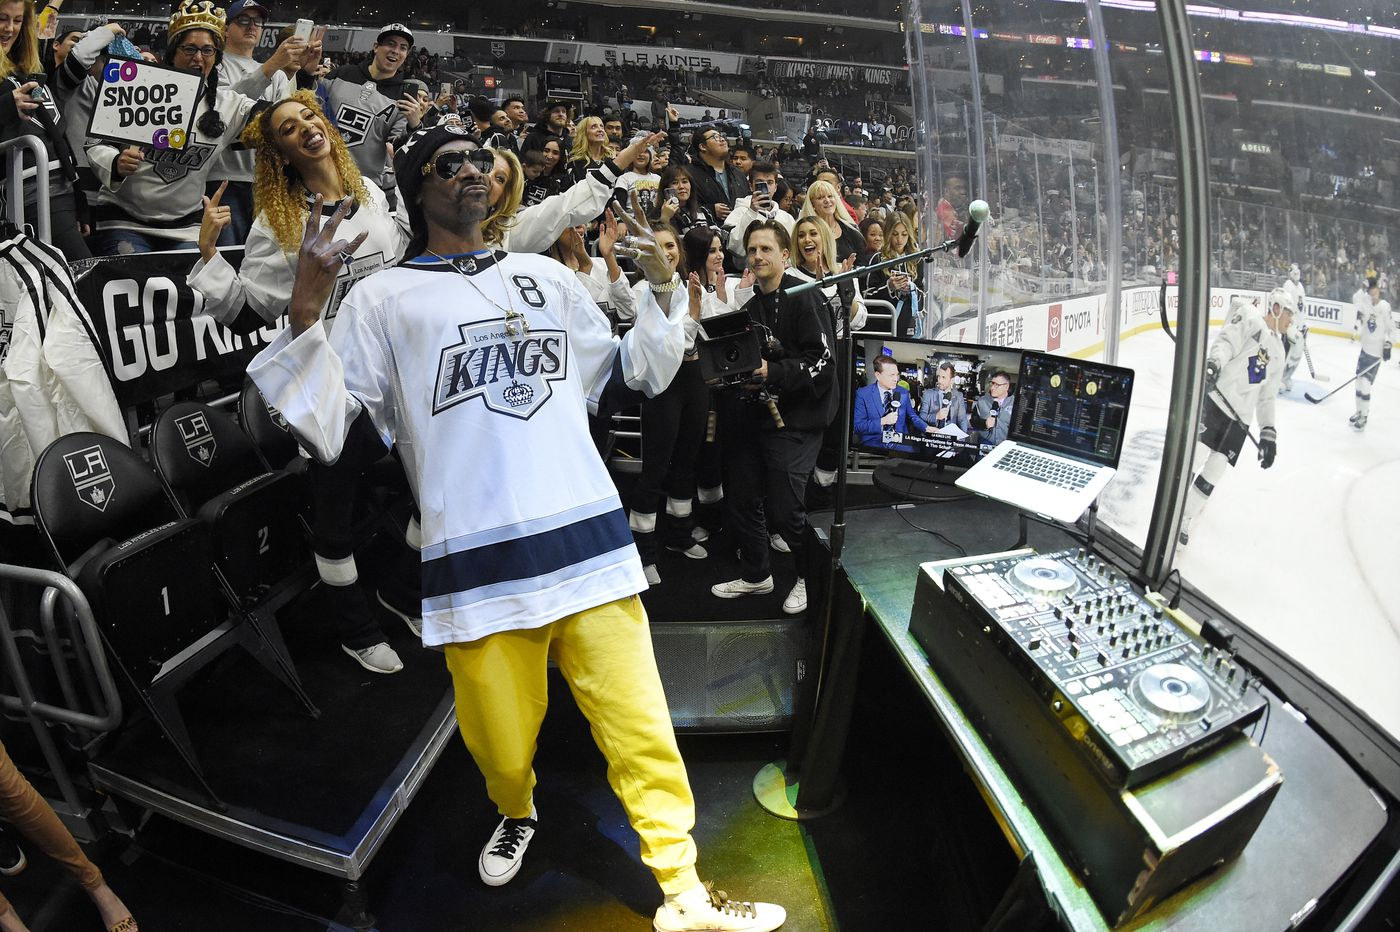 Rapper Snoop Dogg DJ's prior to an NHL hockey game between the Los Angeles Kings and the Colorado Avalanche Saturday, Feb. 22, 2020, in Los Angeles. (AP Photo/Mark J. Terrill)